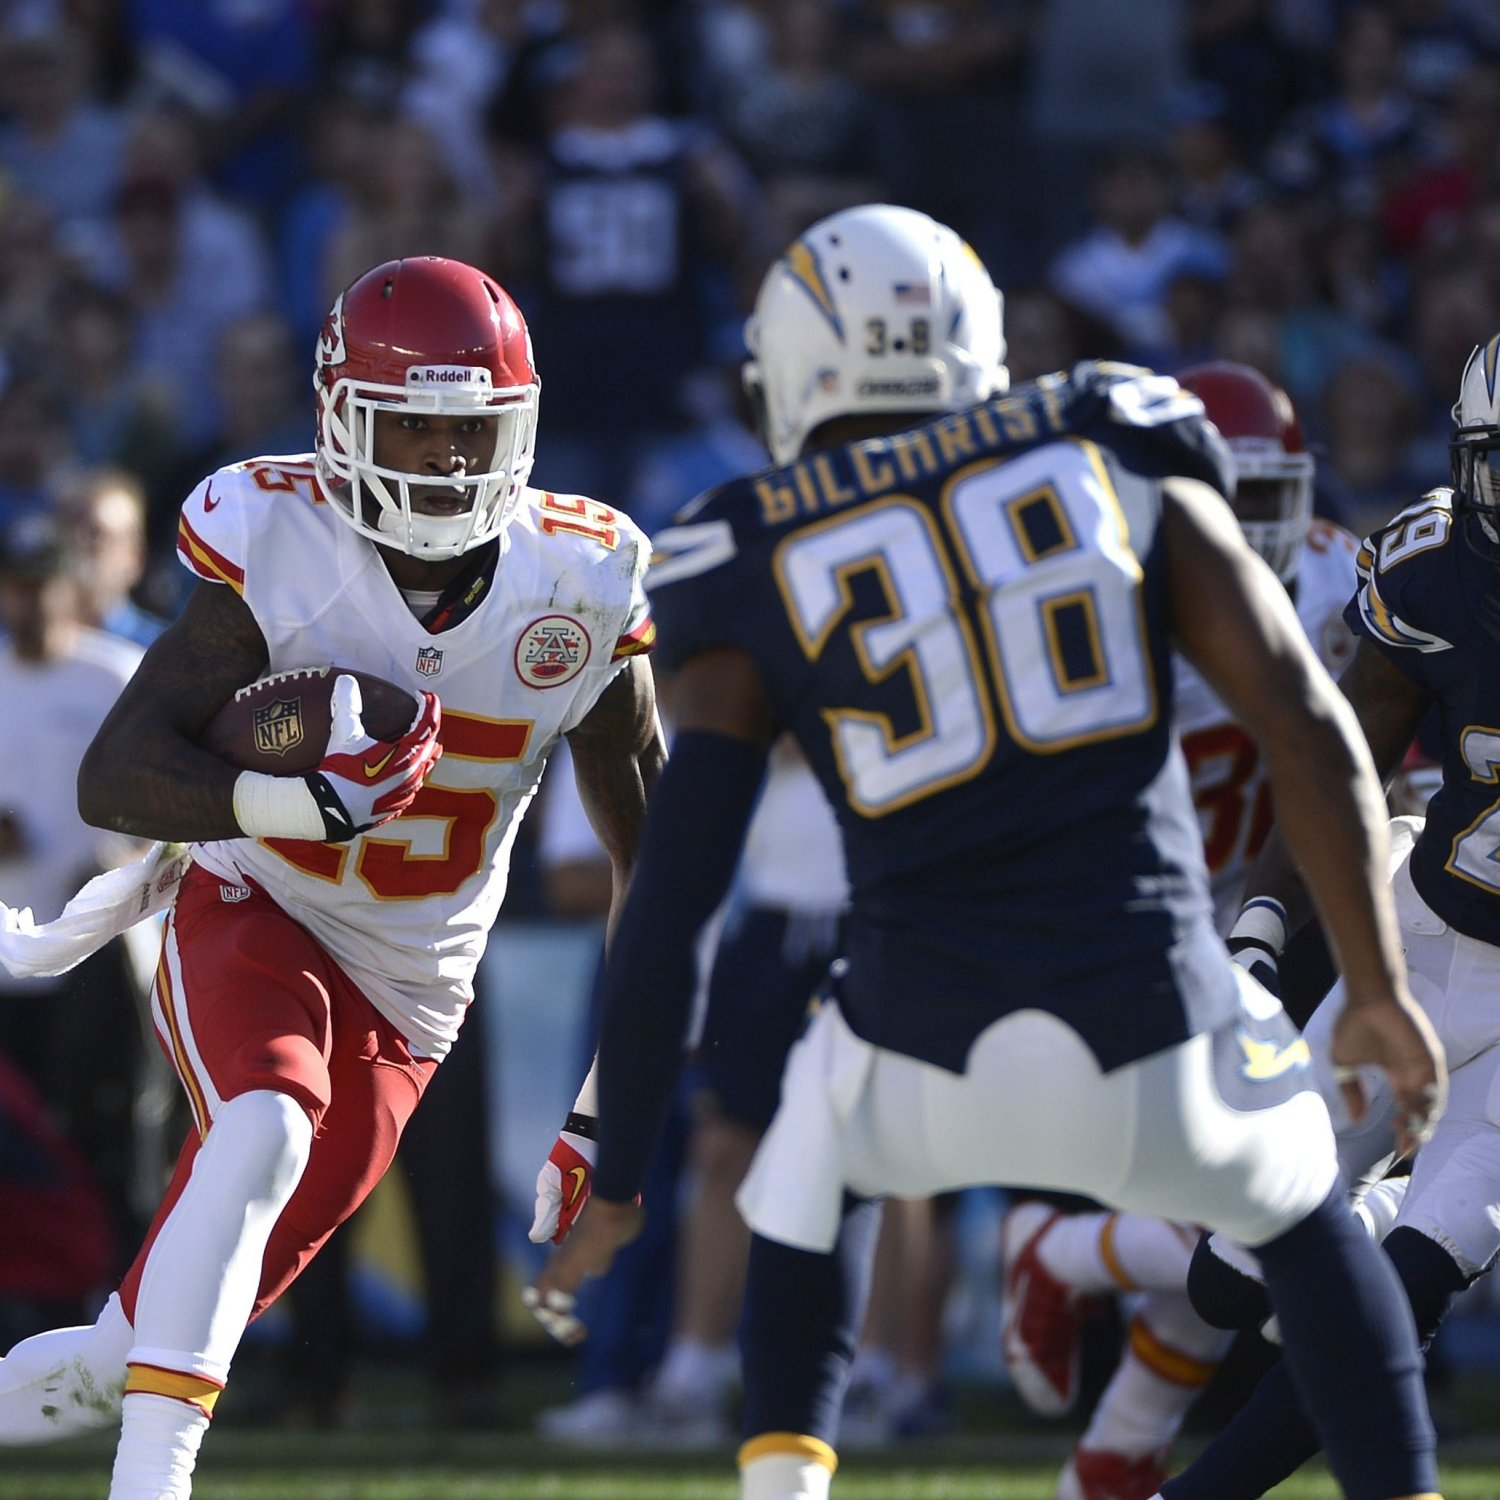 San Diego Chargers Chiefs Game: The Latest San Diego Chargers News